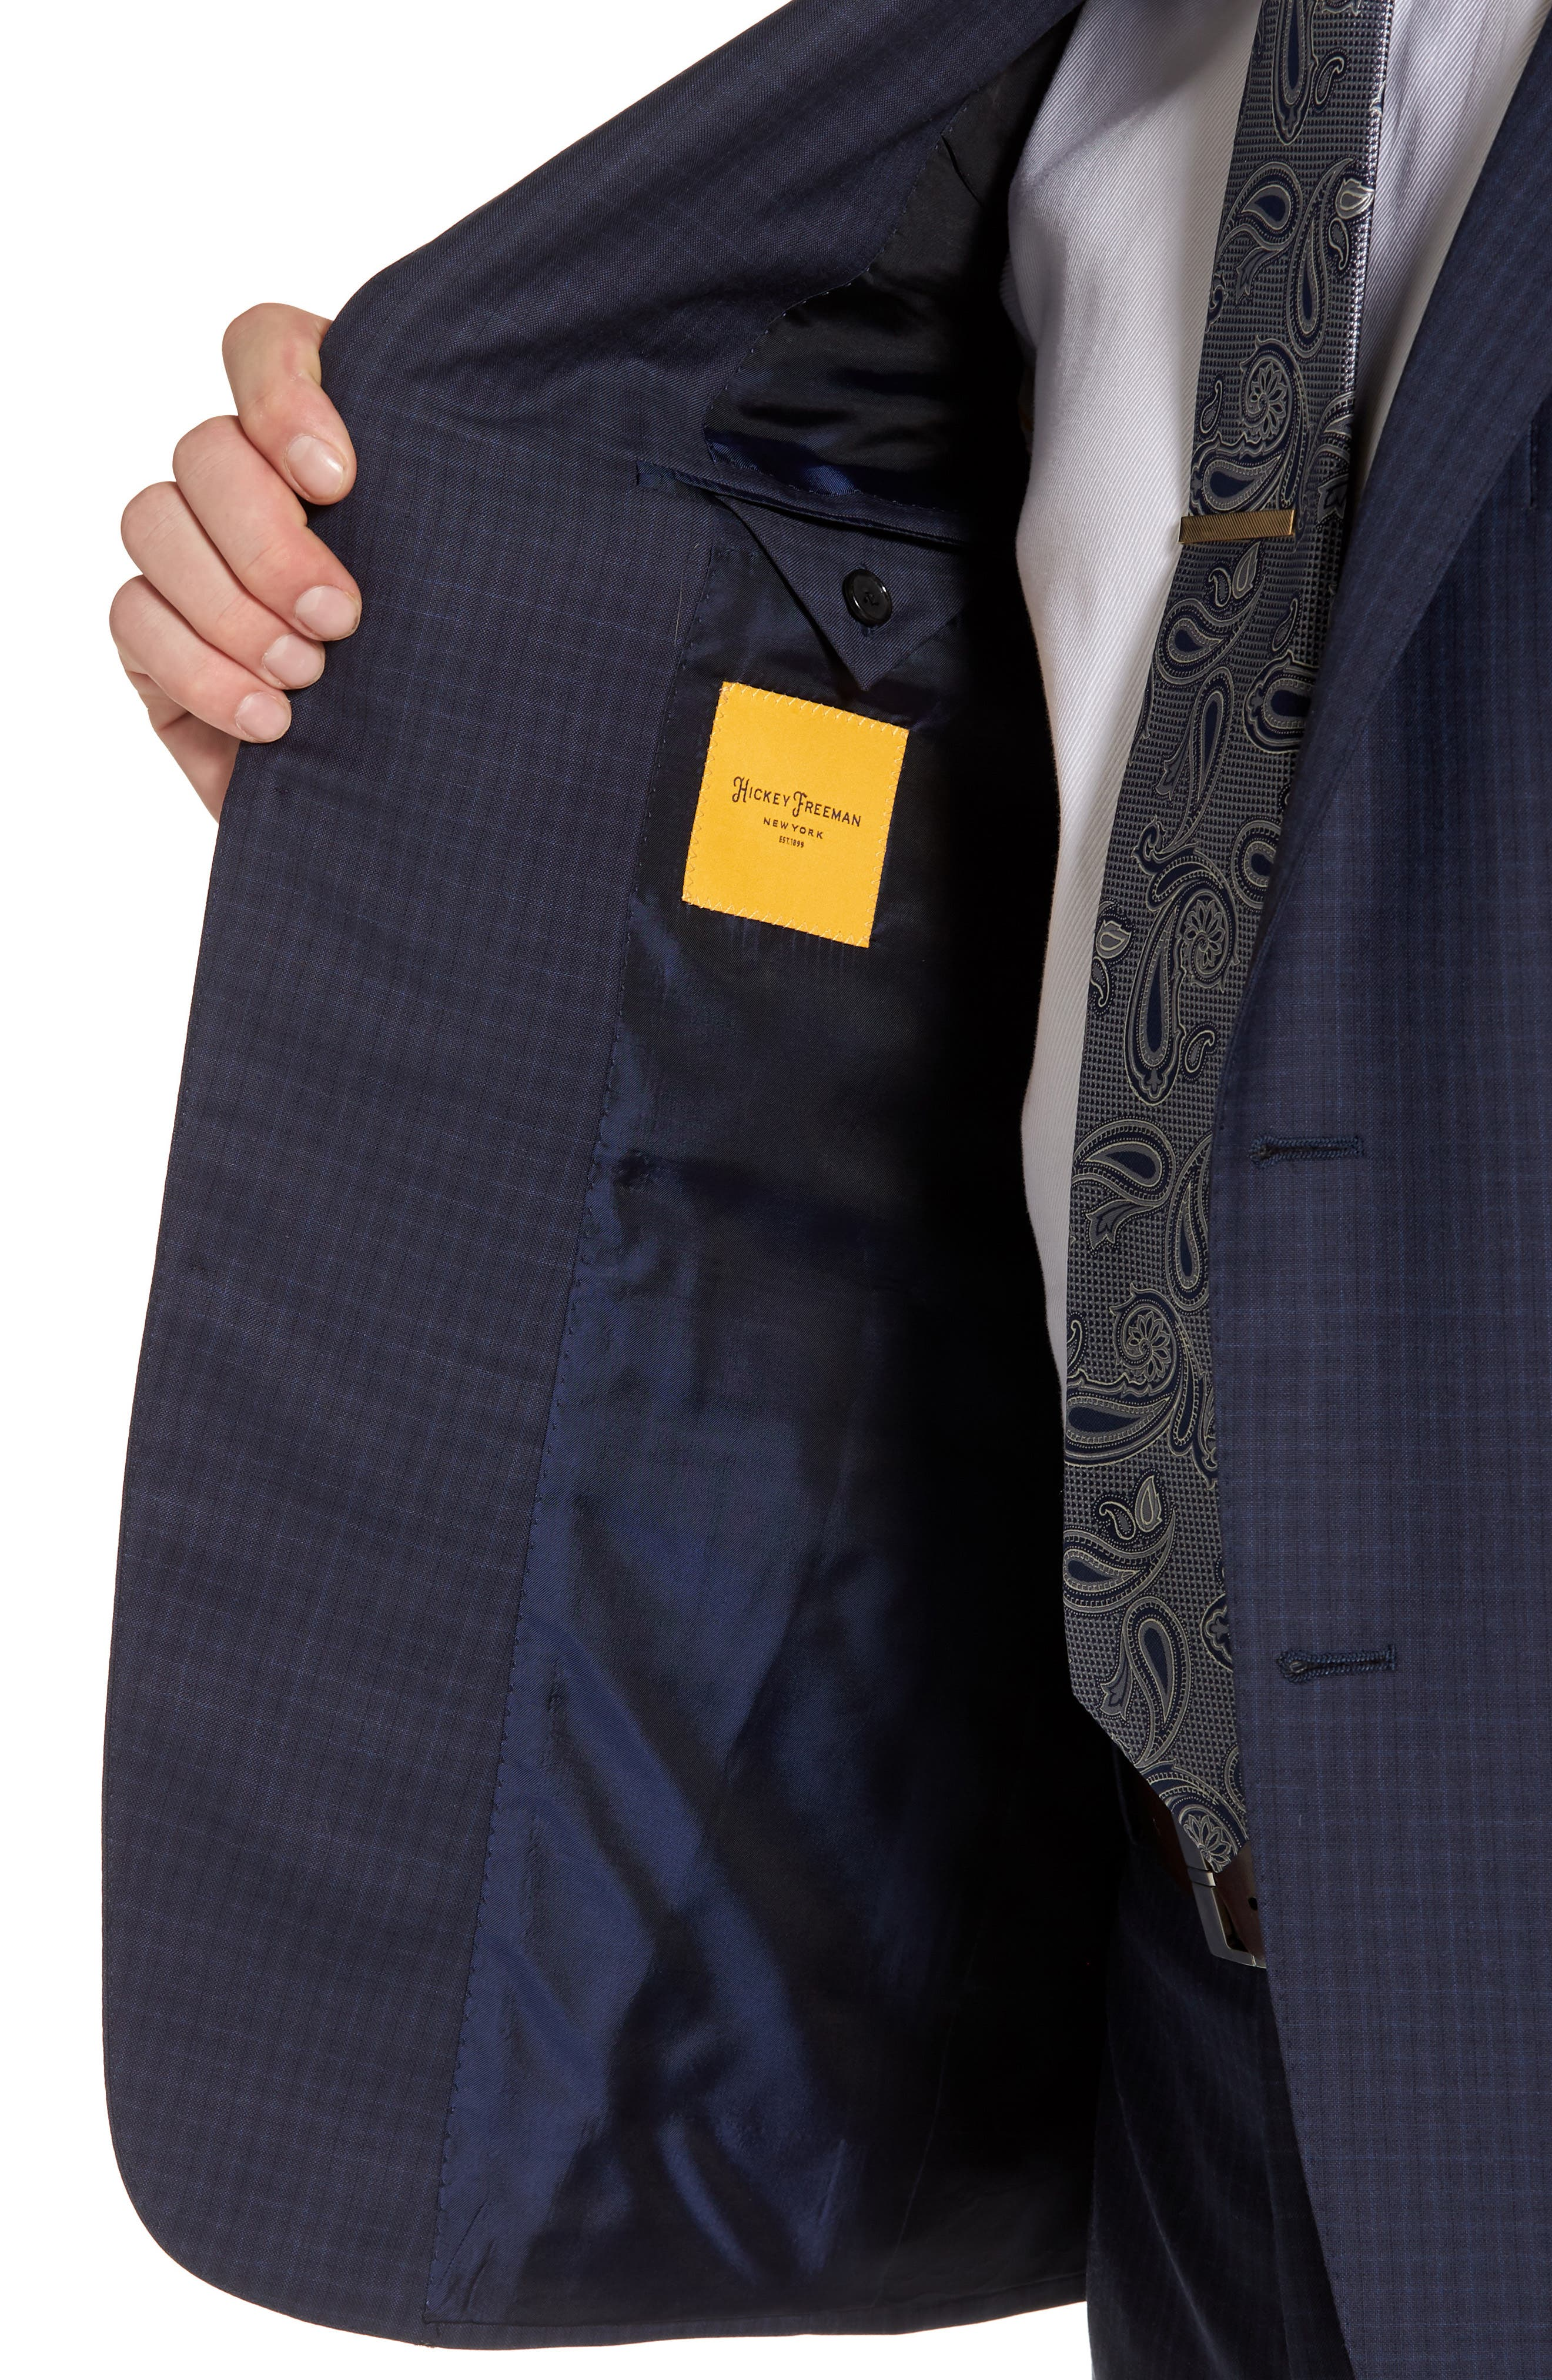 HICKEY FREEMAN,                             Classic B Fit Check Wool Suit,                             Alternate thumbnail 4, color,                             410